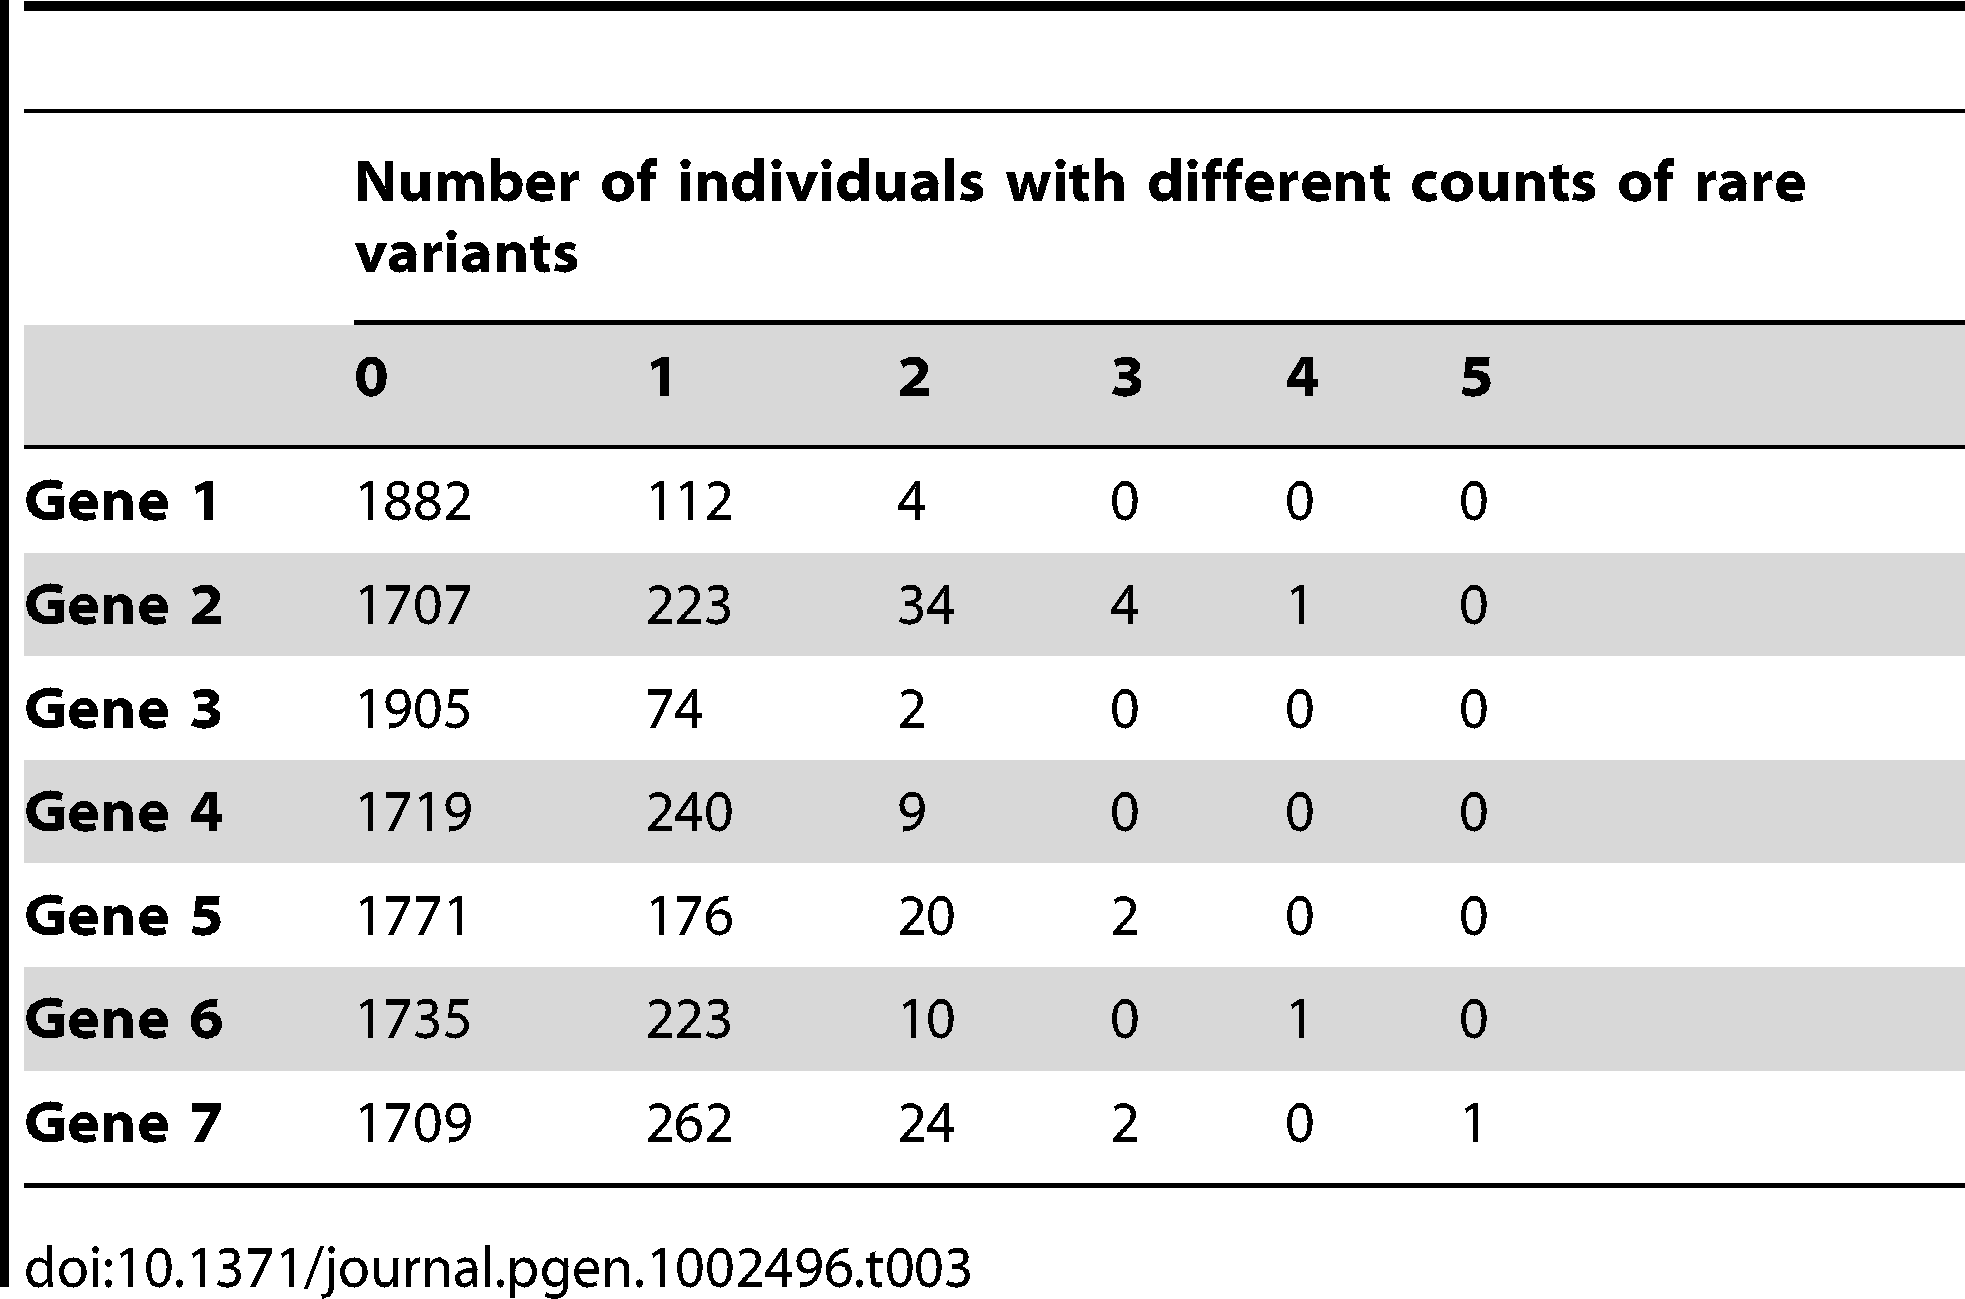 Description of the count of rare variants per gene.